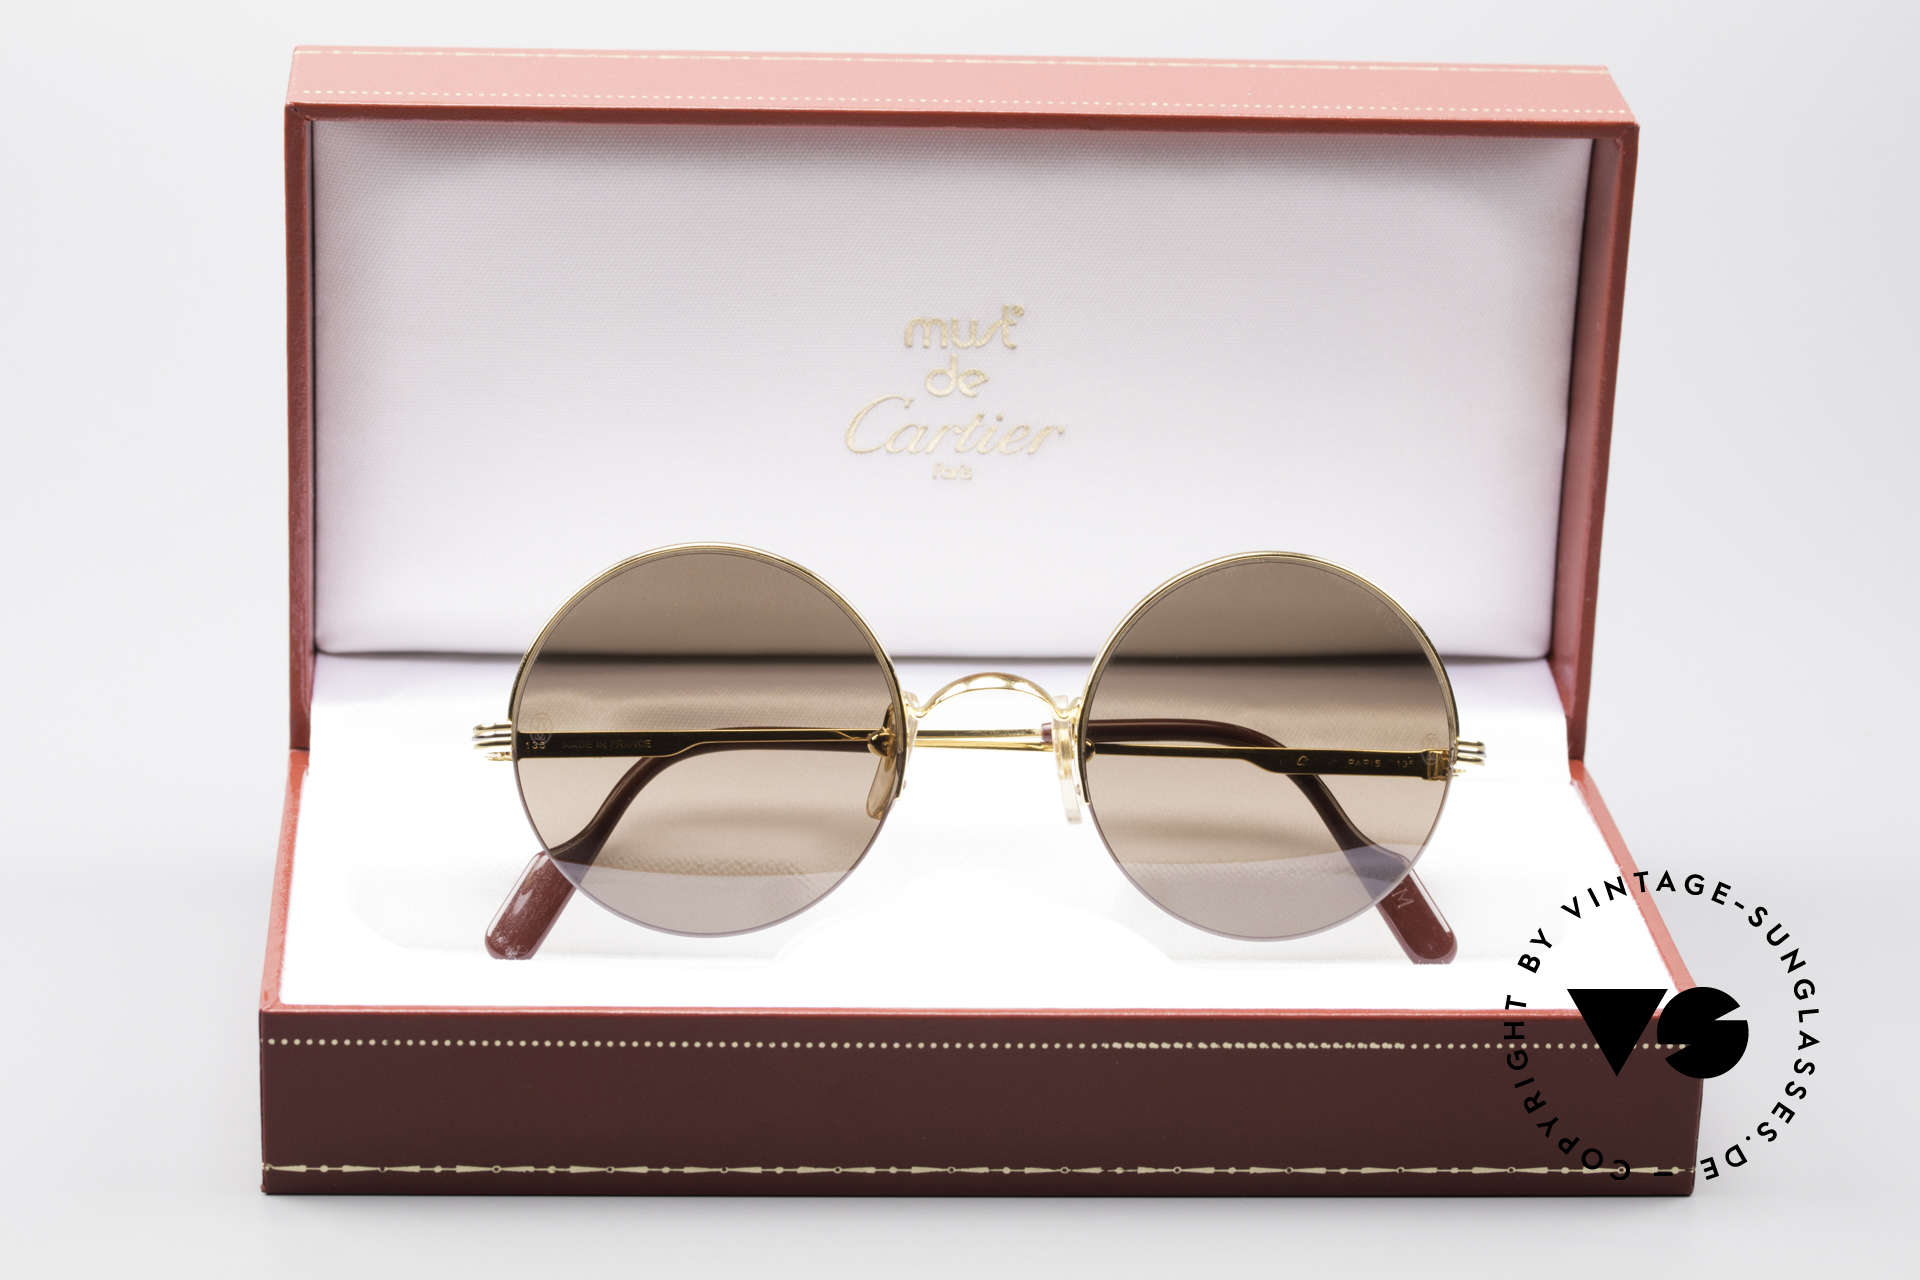 Cartier Mayfair - M Luxury Round Sunglasses, with original Cartier box, case and certificate, Made for Men and Women